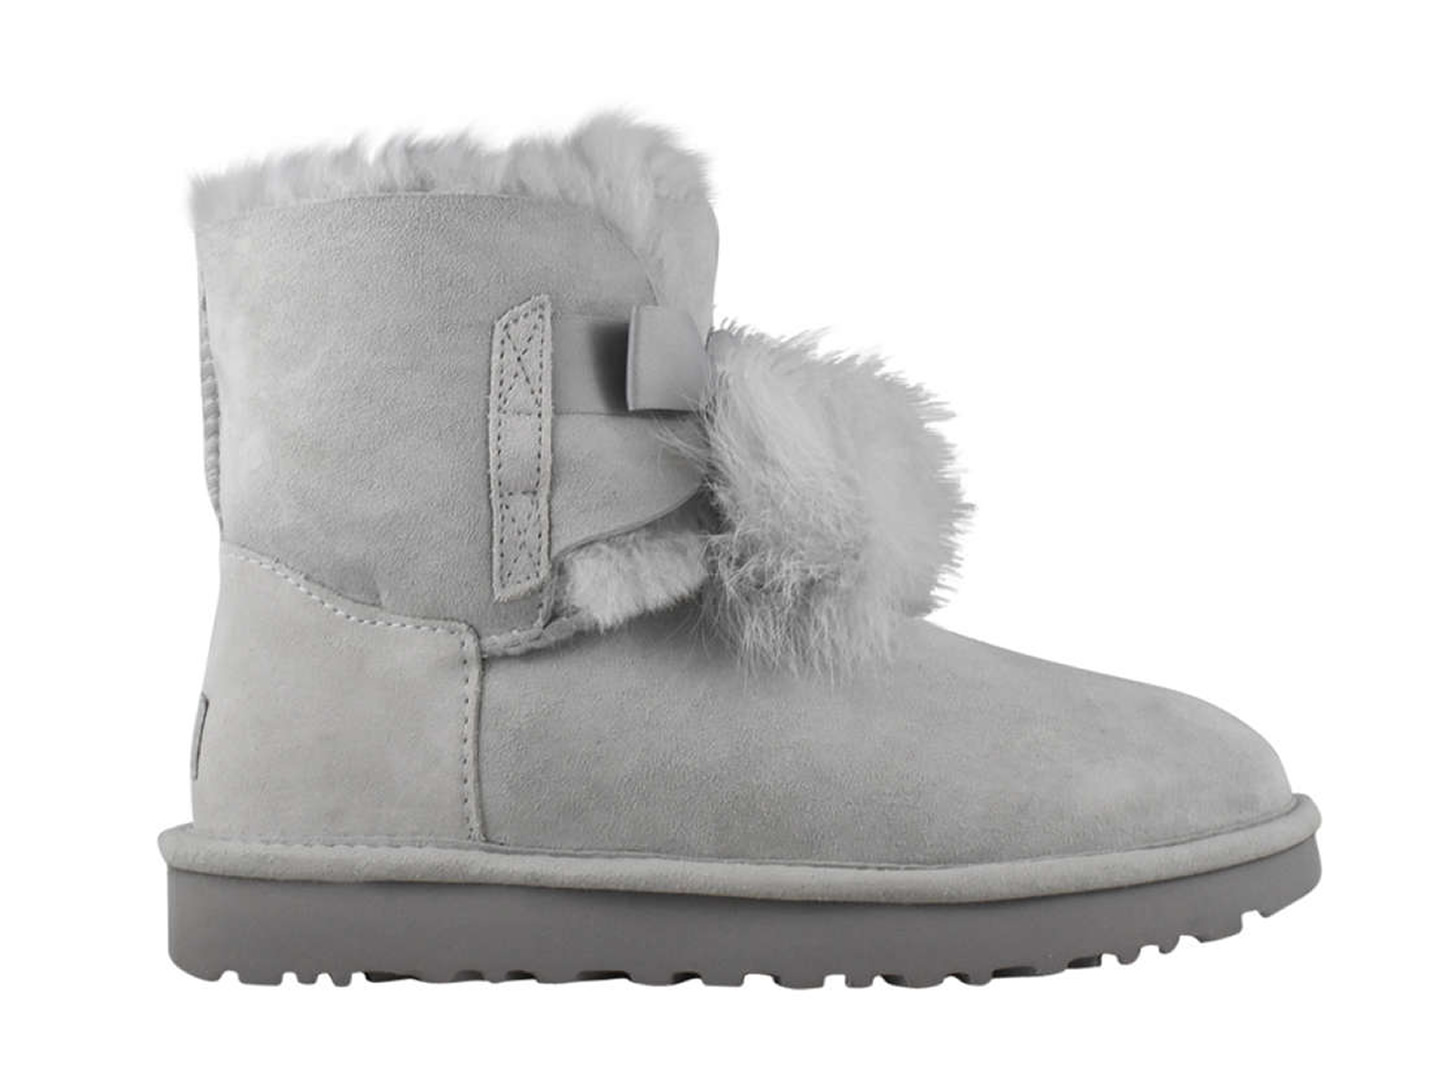 UGG Grey Gita Pom Pom Bootie, Town Shoes, South Granville Holiday Gift Guide 2017, Vancouver, British Columbia, Canada